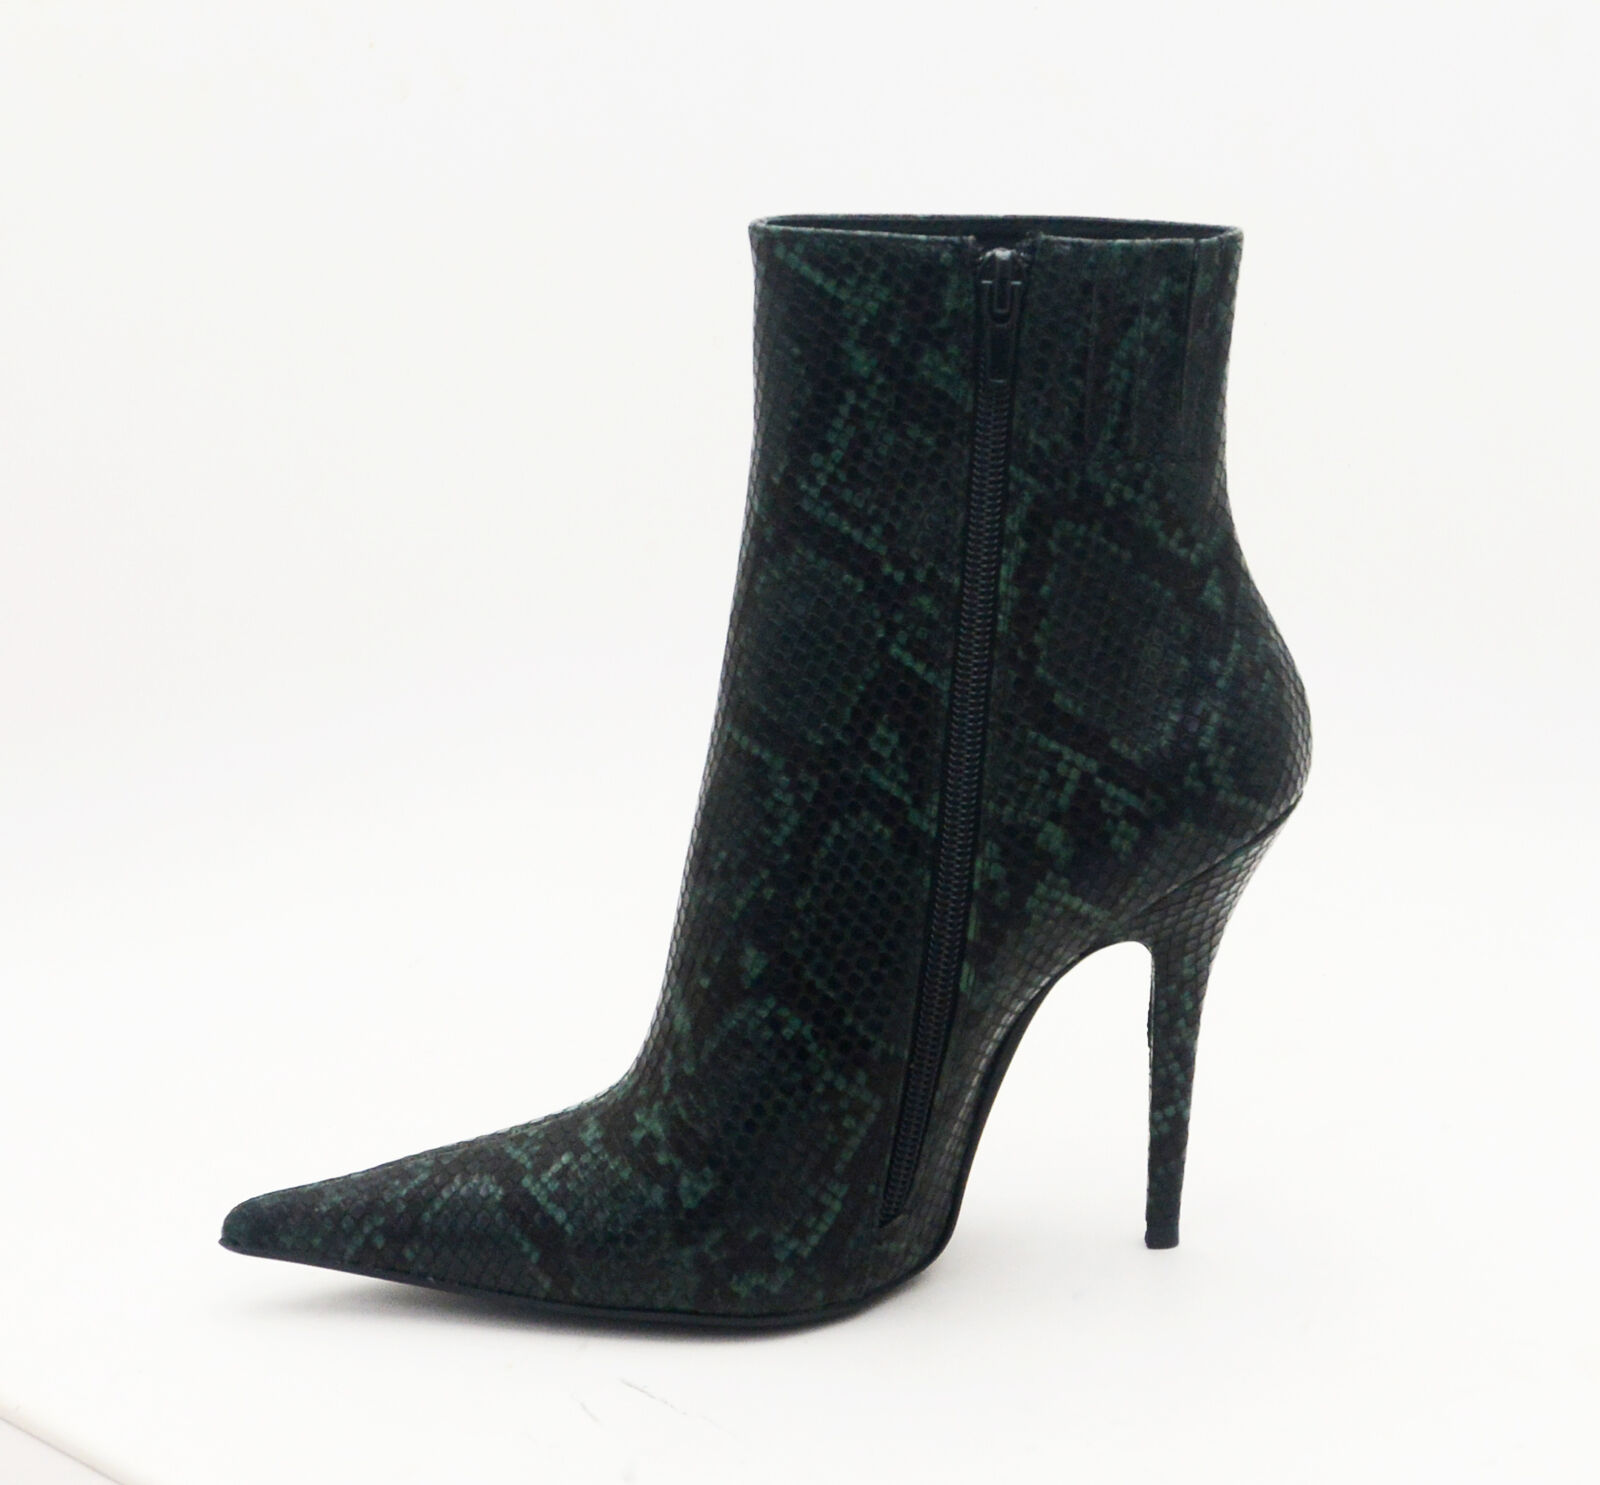 Jeffrey Campbell VEDETTE Bootie Green Snake High Heel Pointed Toe Boots (7.5)